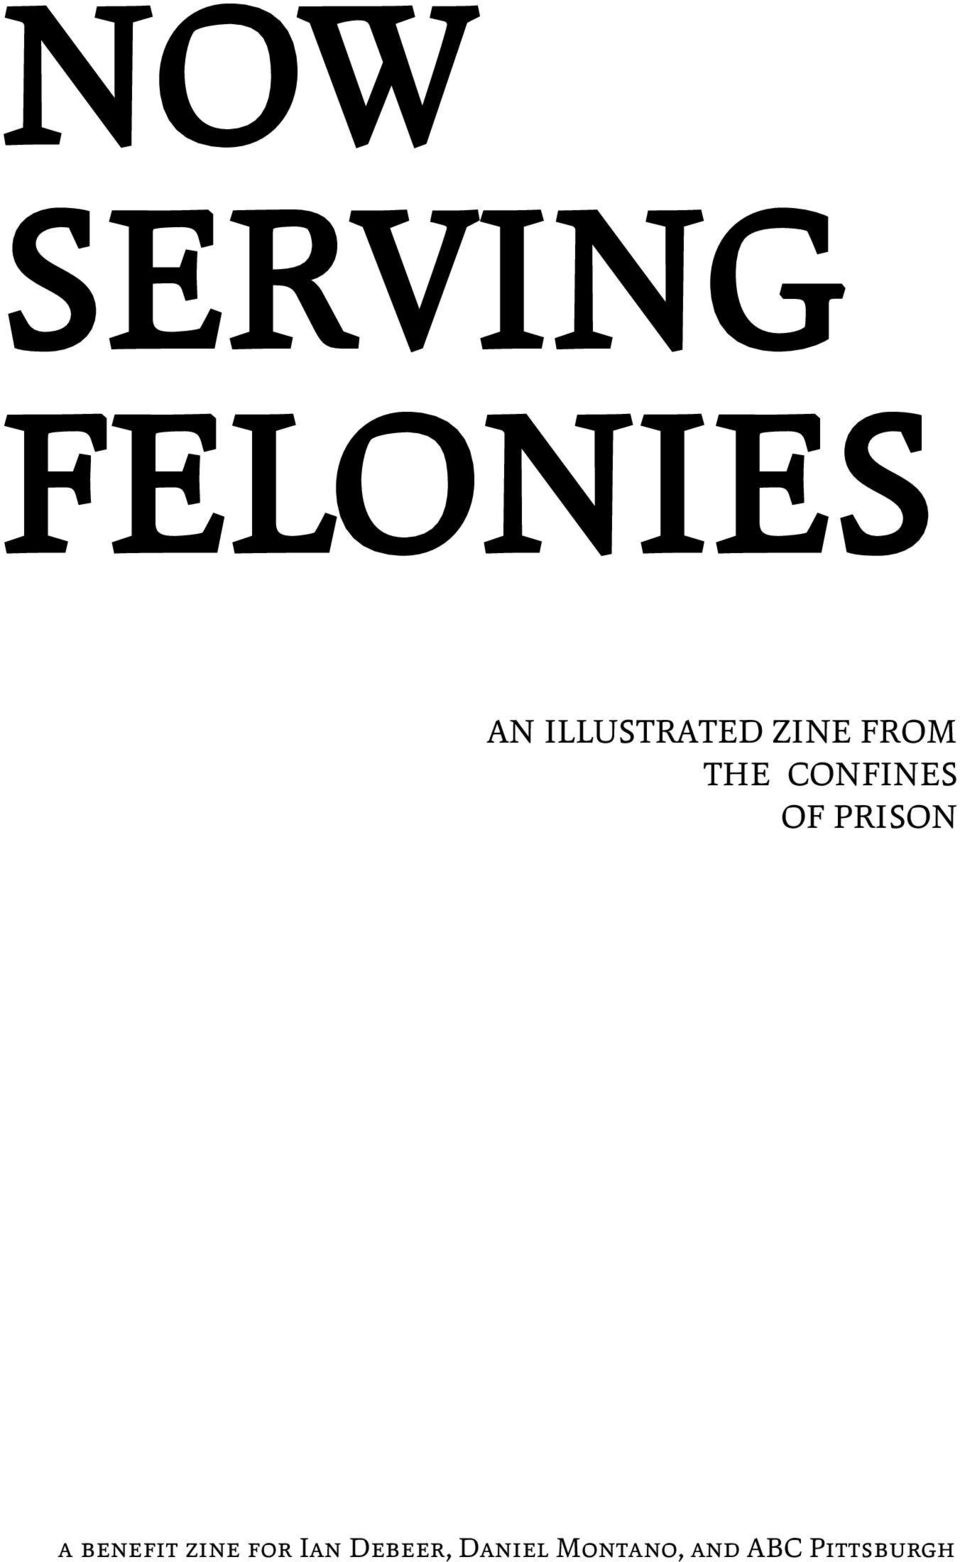 CONFINES OF PRISON a benefit zine